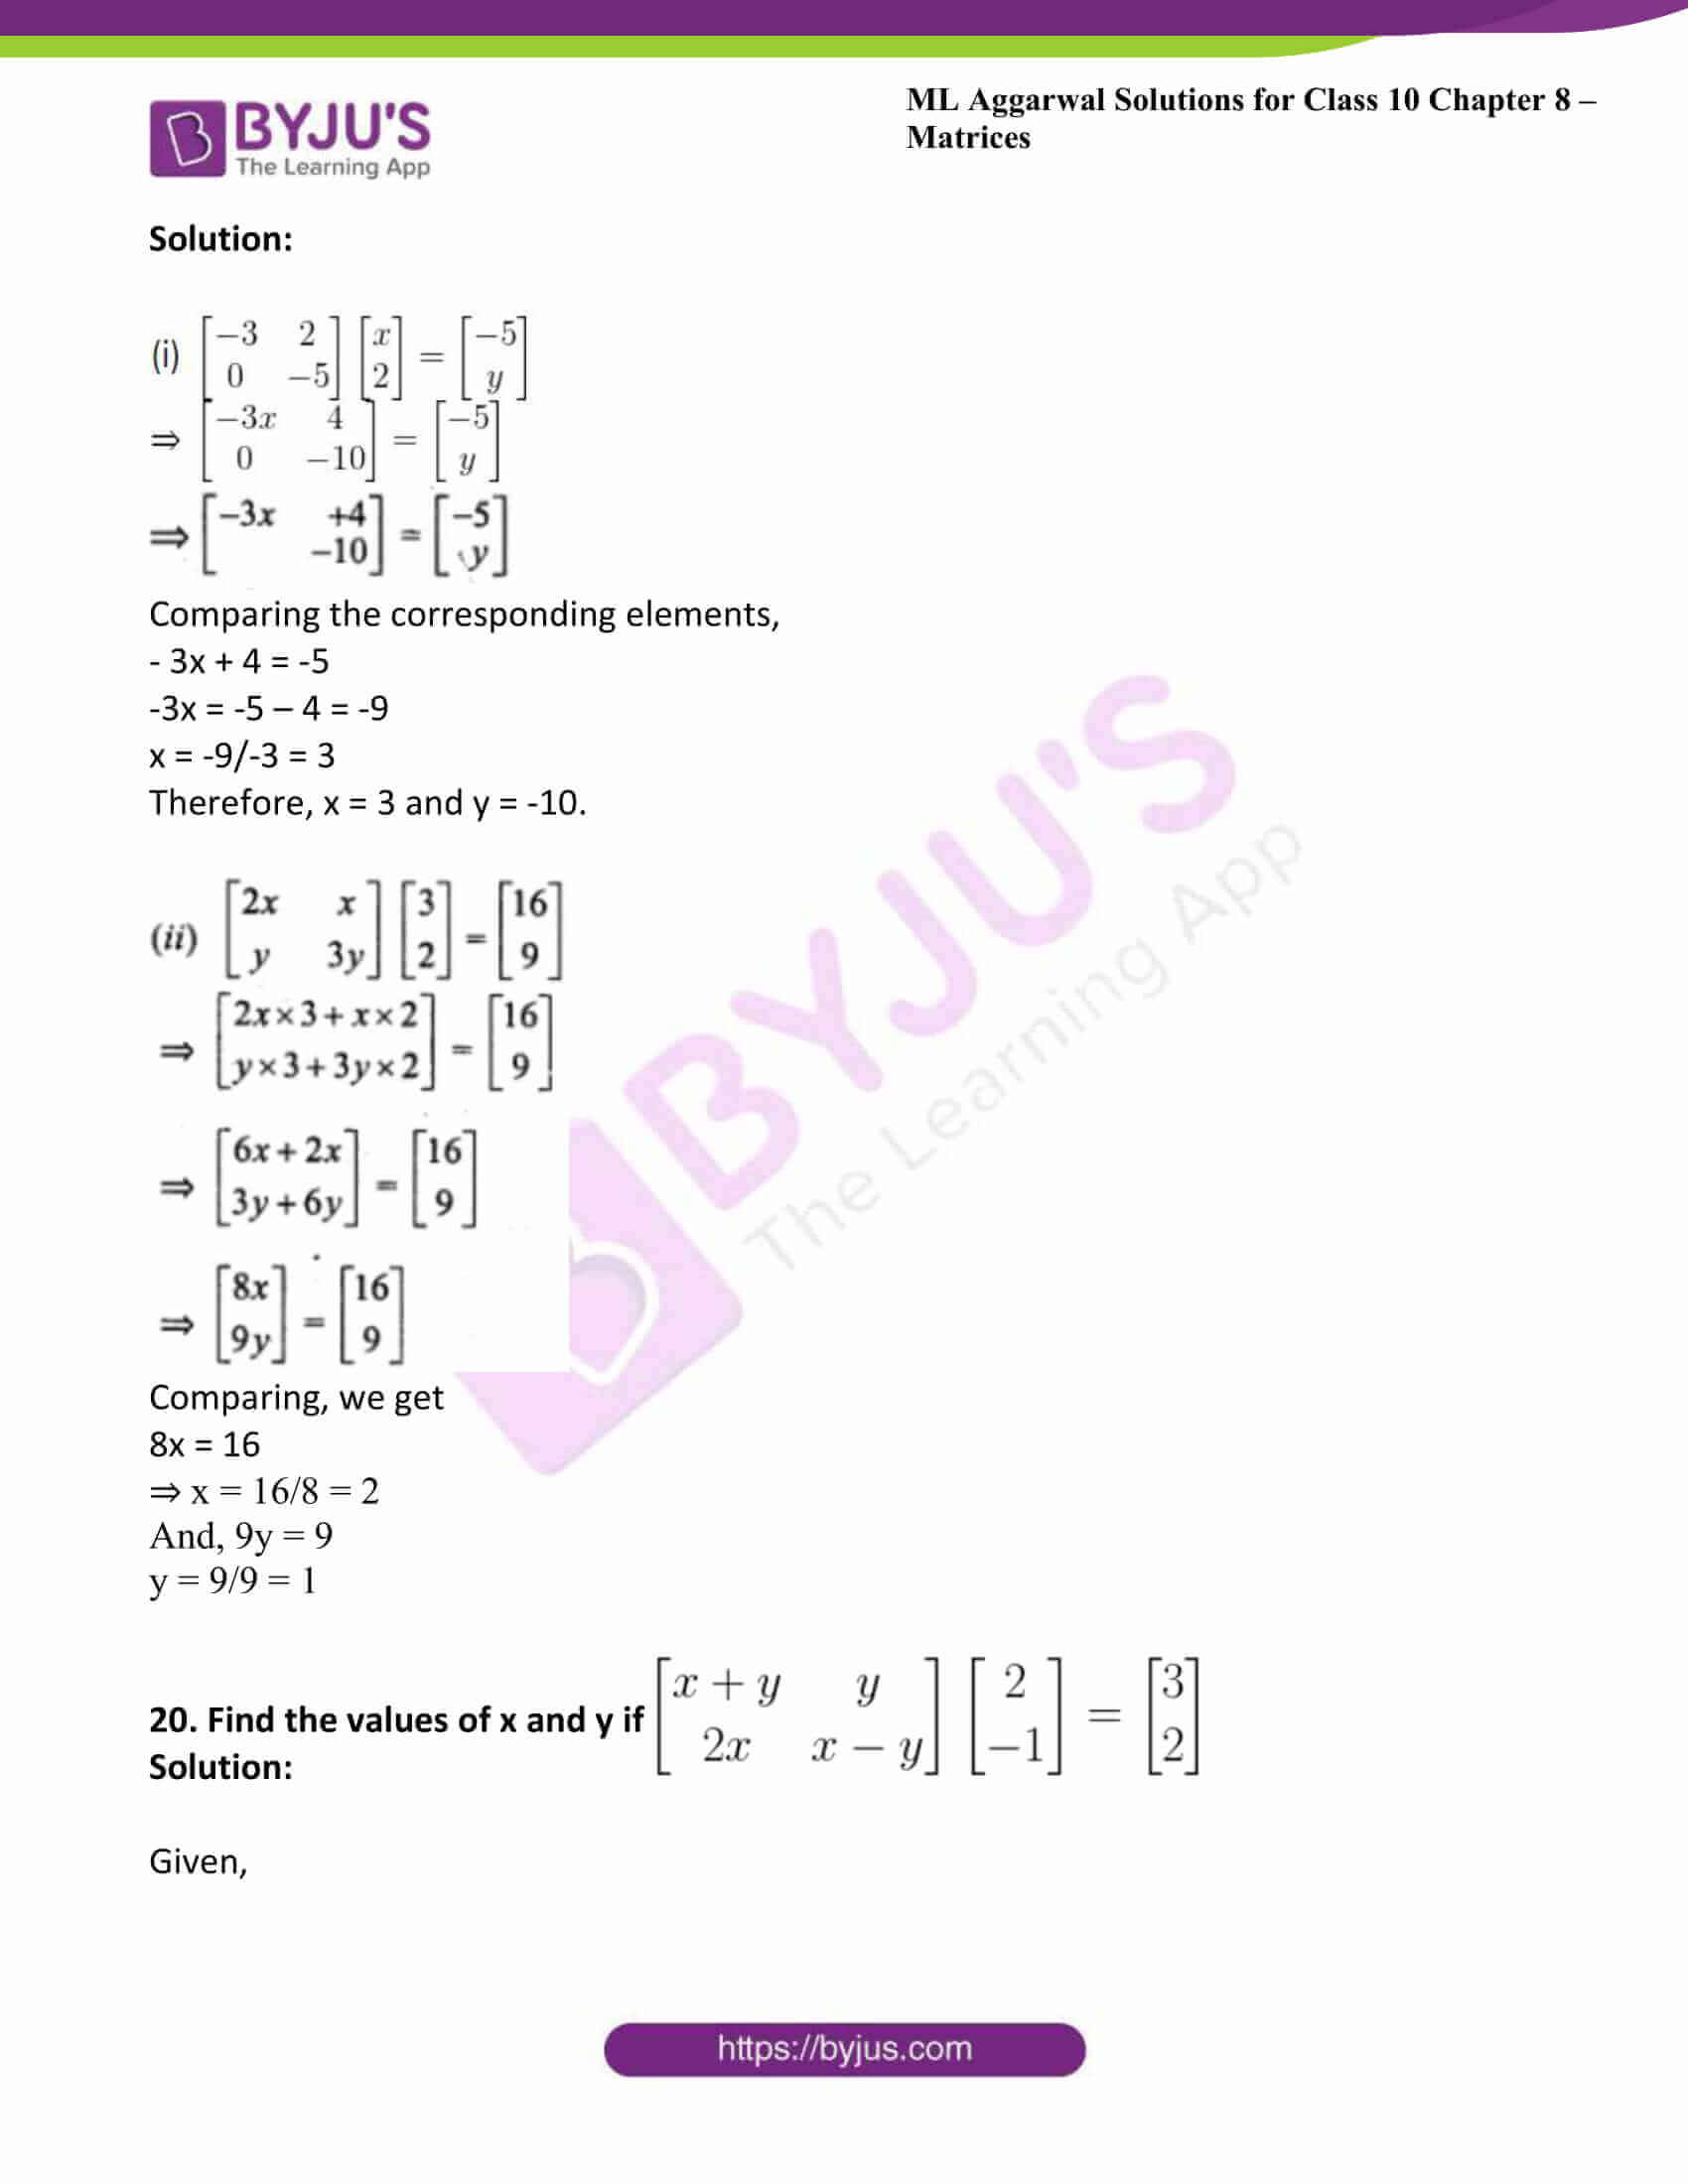 ml aggarwal solutions class 10 maths chapter 8 31